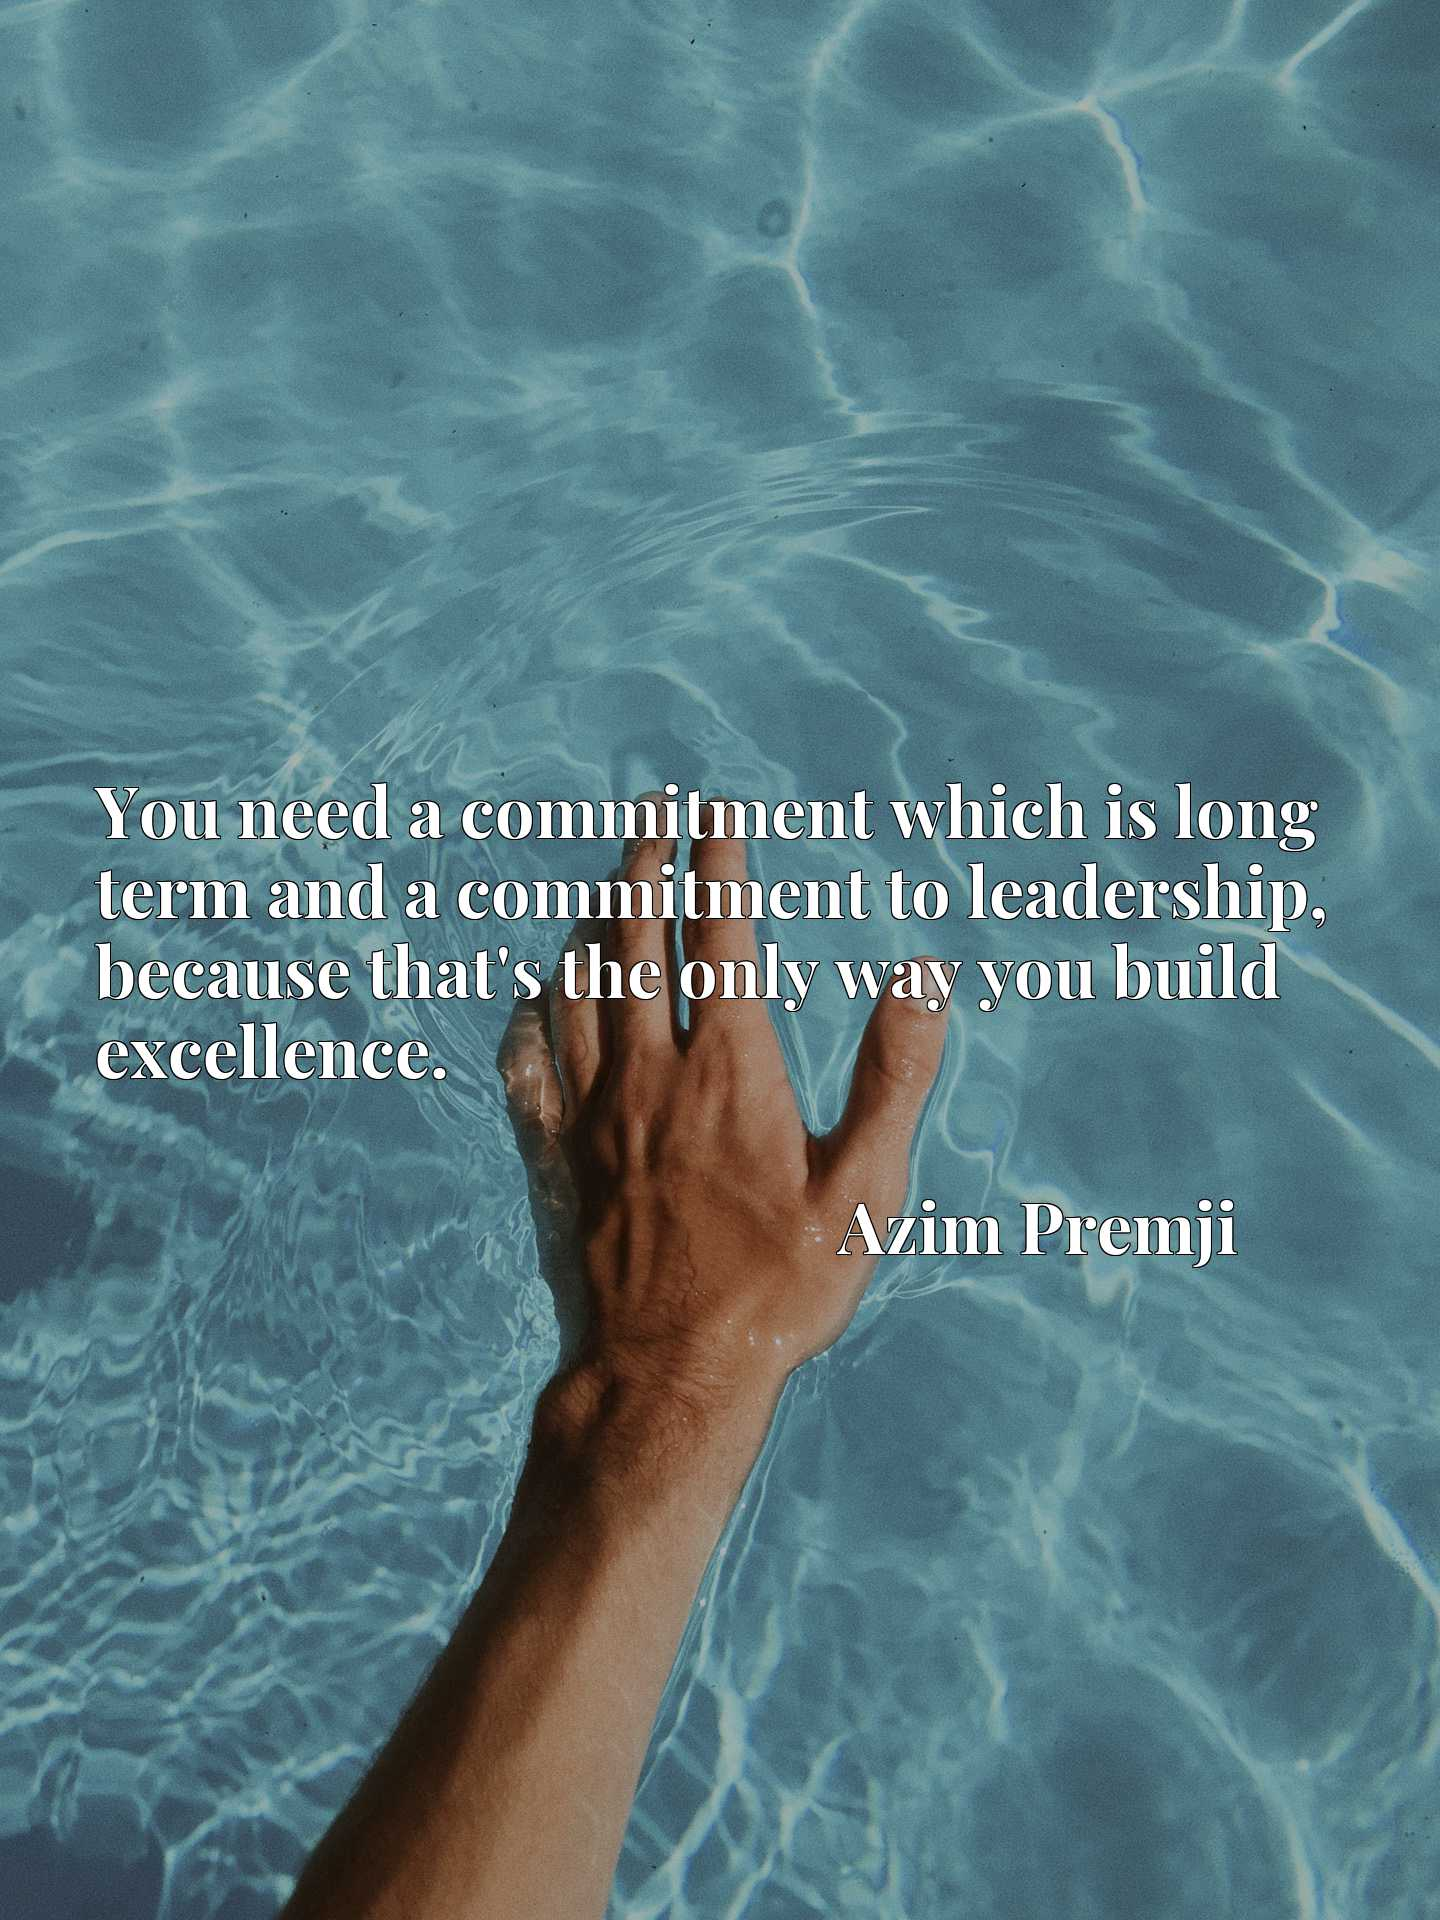 You need a commitment which is long term and a commitment to leadership, because that's the only way you build excellence.